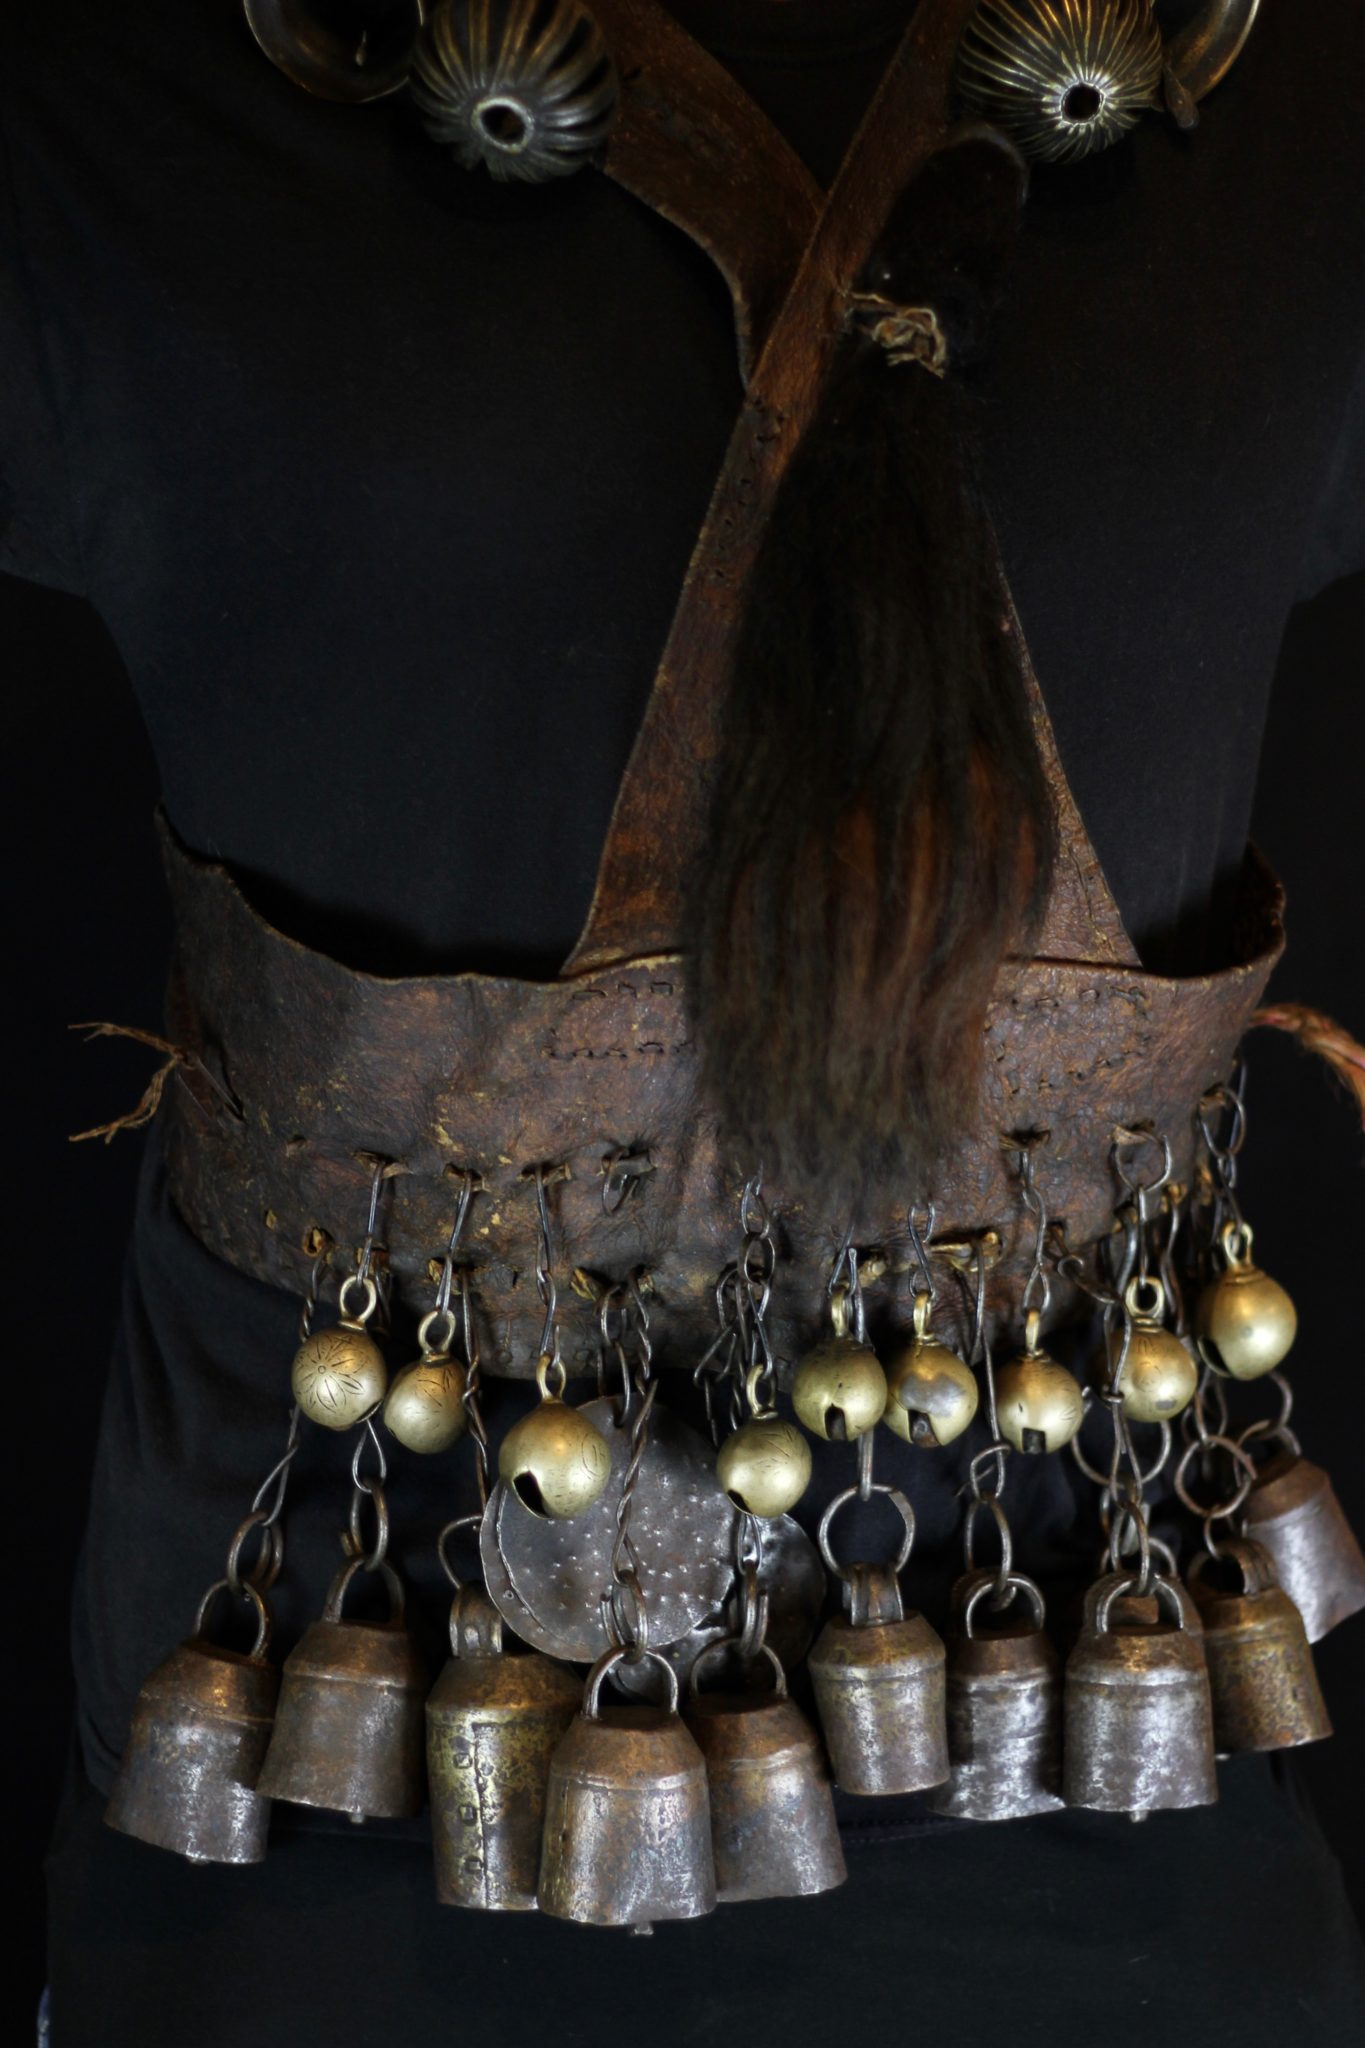 """Shaman Ritual Apron Belt, Nepal, Early 20th c., (some bells up to 150 years old), An essential part of Nepalese shaman costumes, this heavy apron belt is made of hide leather, iron chains, and hand crafted cylindrical bells and bangles, brass conical and crotal bells. The yak tail, and other amulets which are attached, are powerful spiritual tools. They are worn duringrituals and ceremonies to protect shaman and villagers and the area from witches and other evil beings. (it is a waist belt with hanging bells and over the shoulder cross straps), 44"""" x 33"""" x 3"""", $3200."""